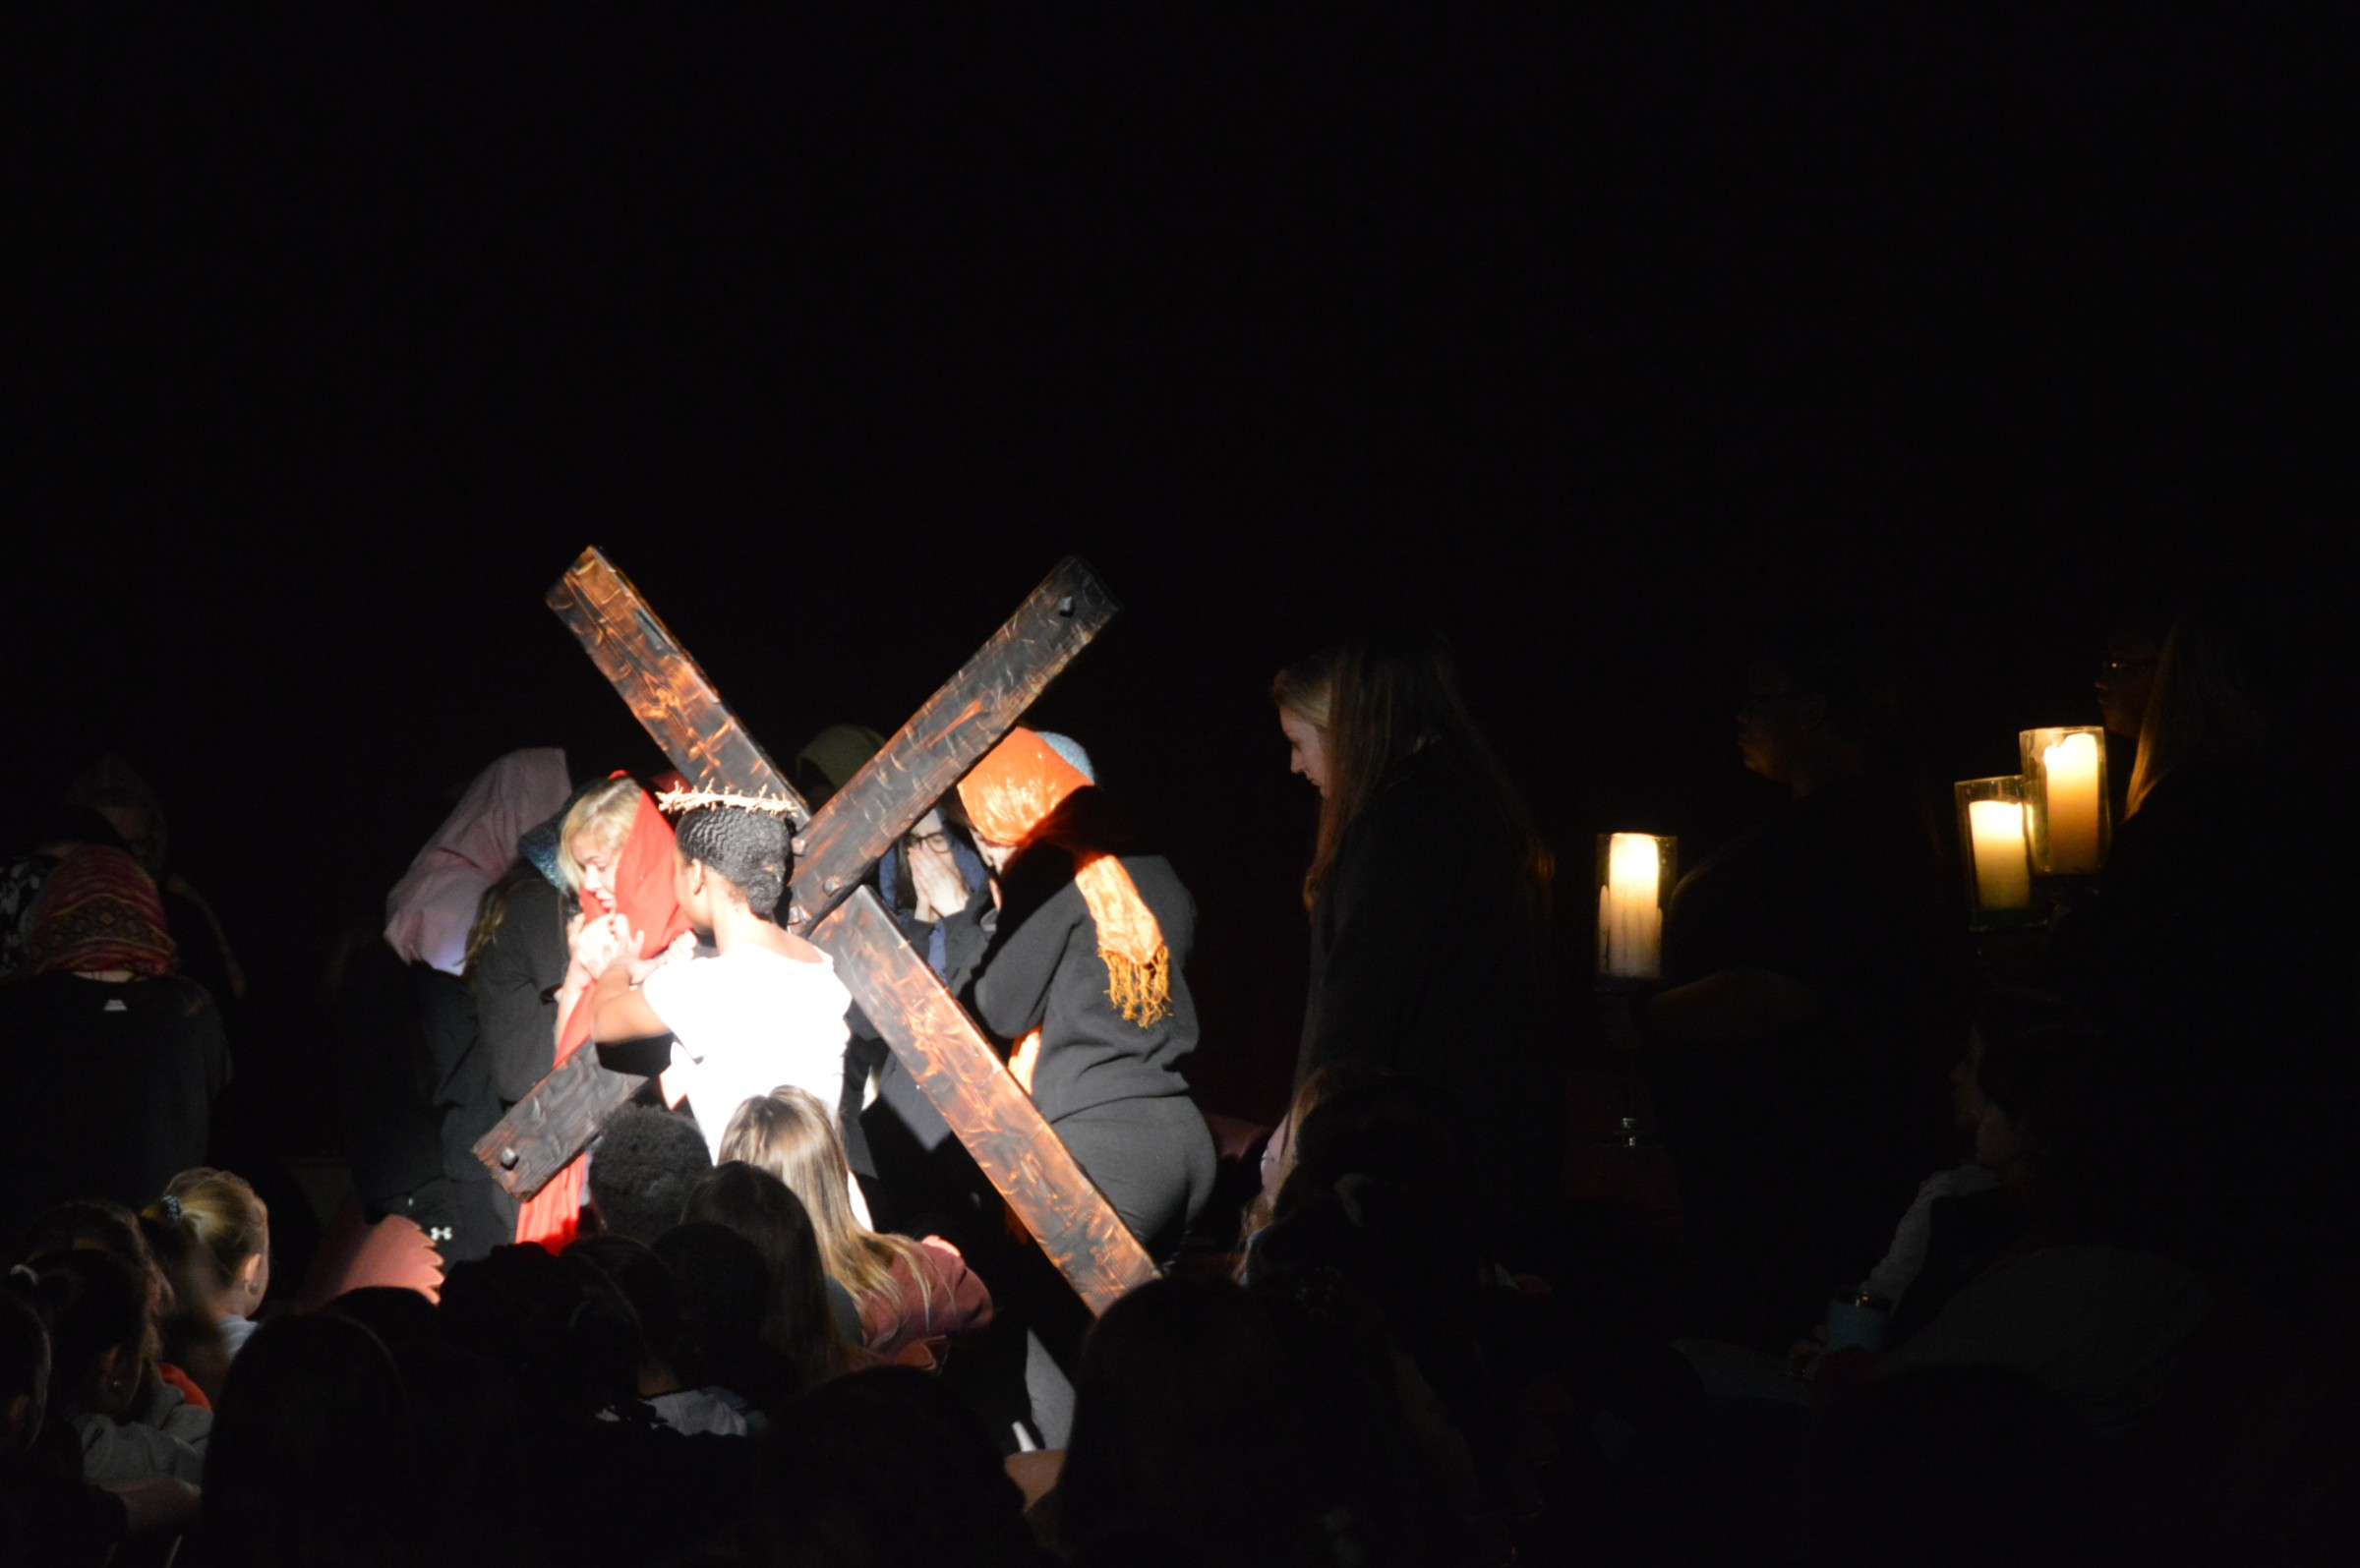 Maryvale reflects on Easter through the Passion of Jesus Christ